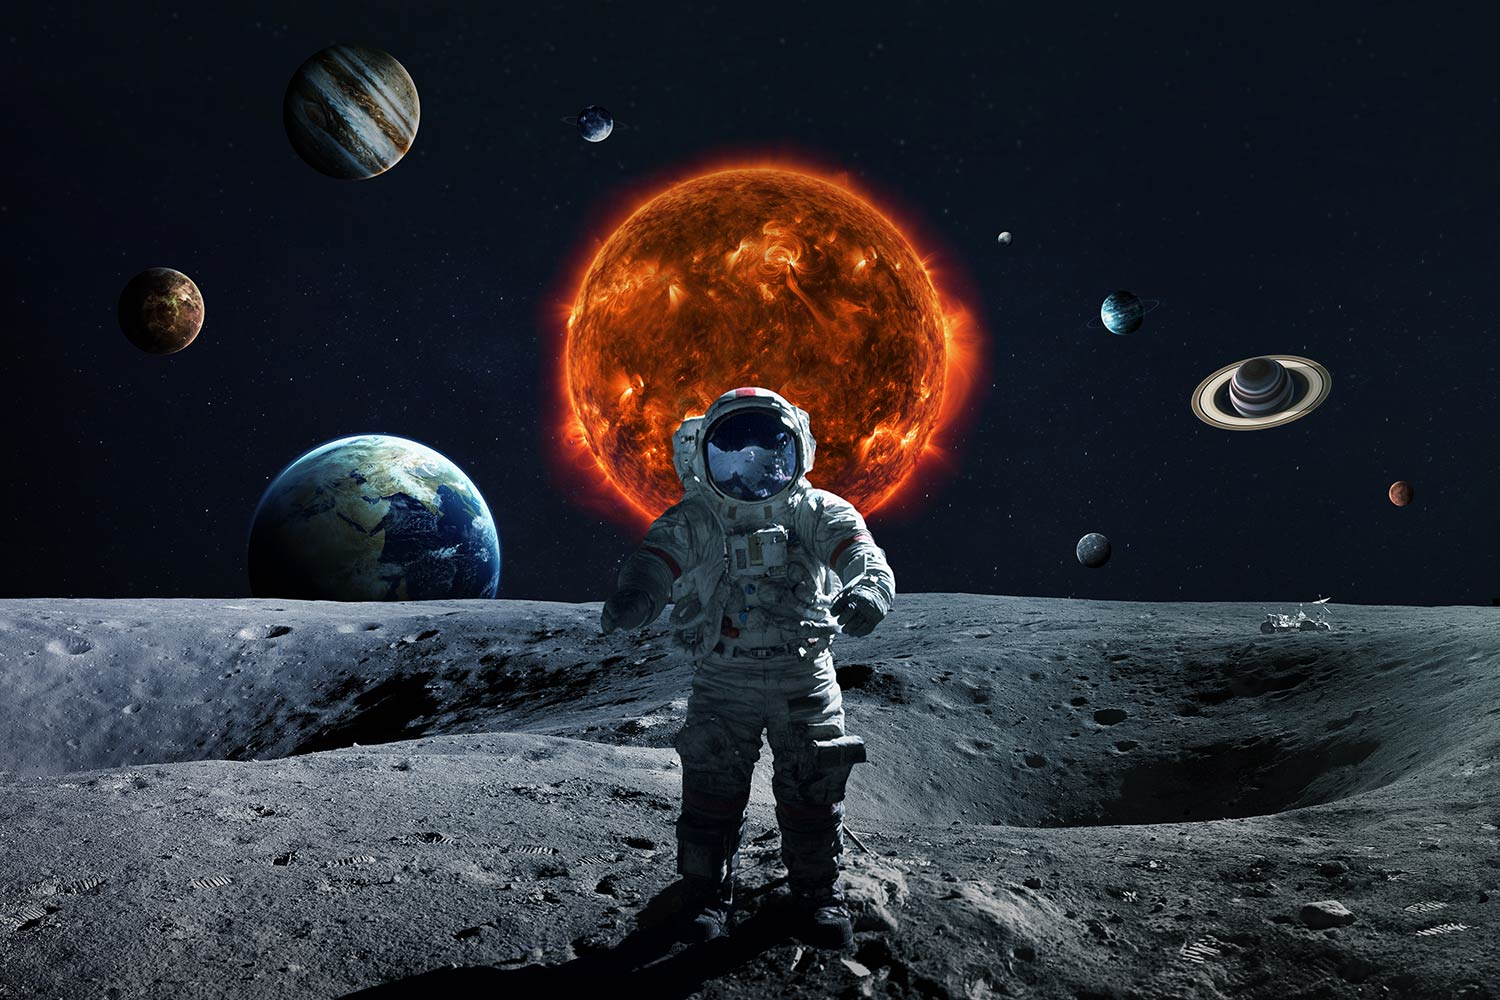 Man On Moon 2304105 Hd Wallpaper Backgrounds Download